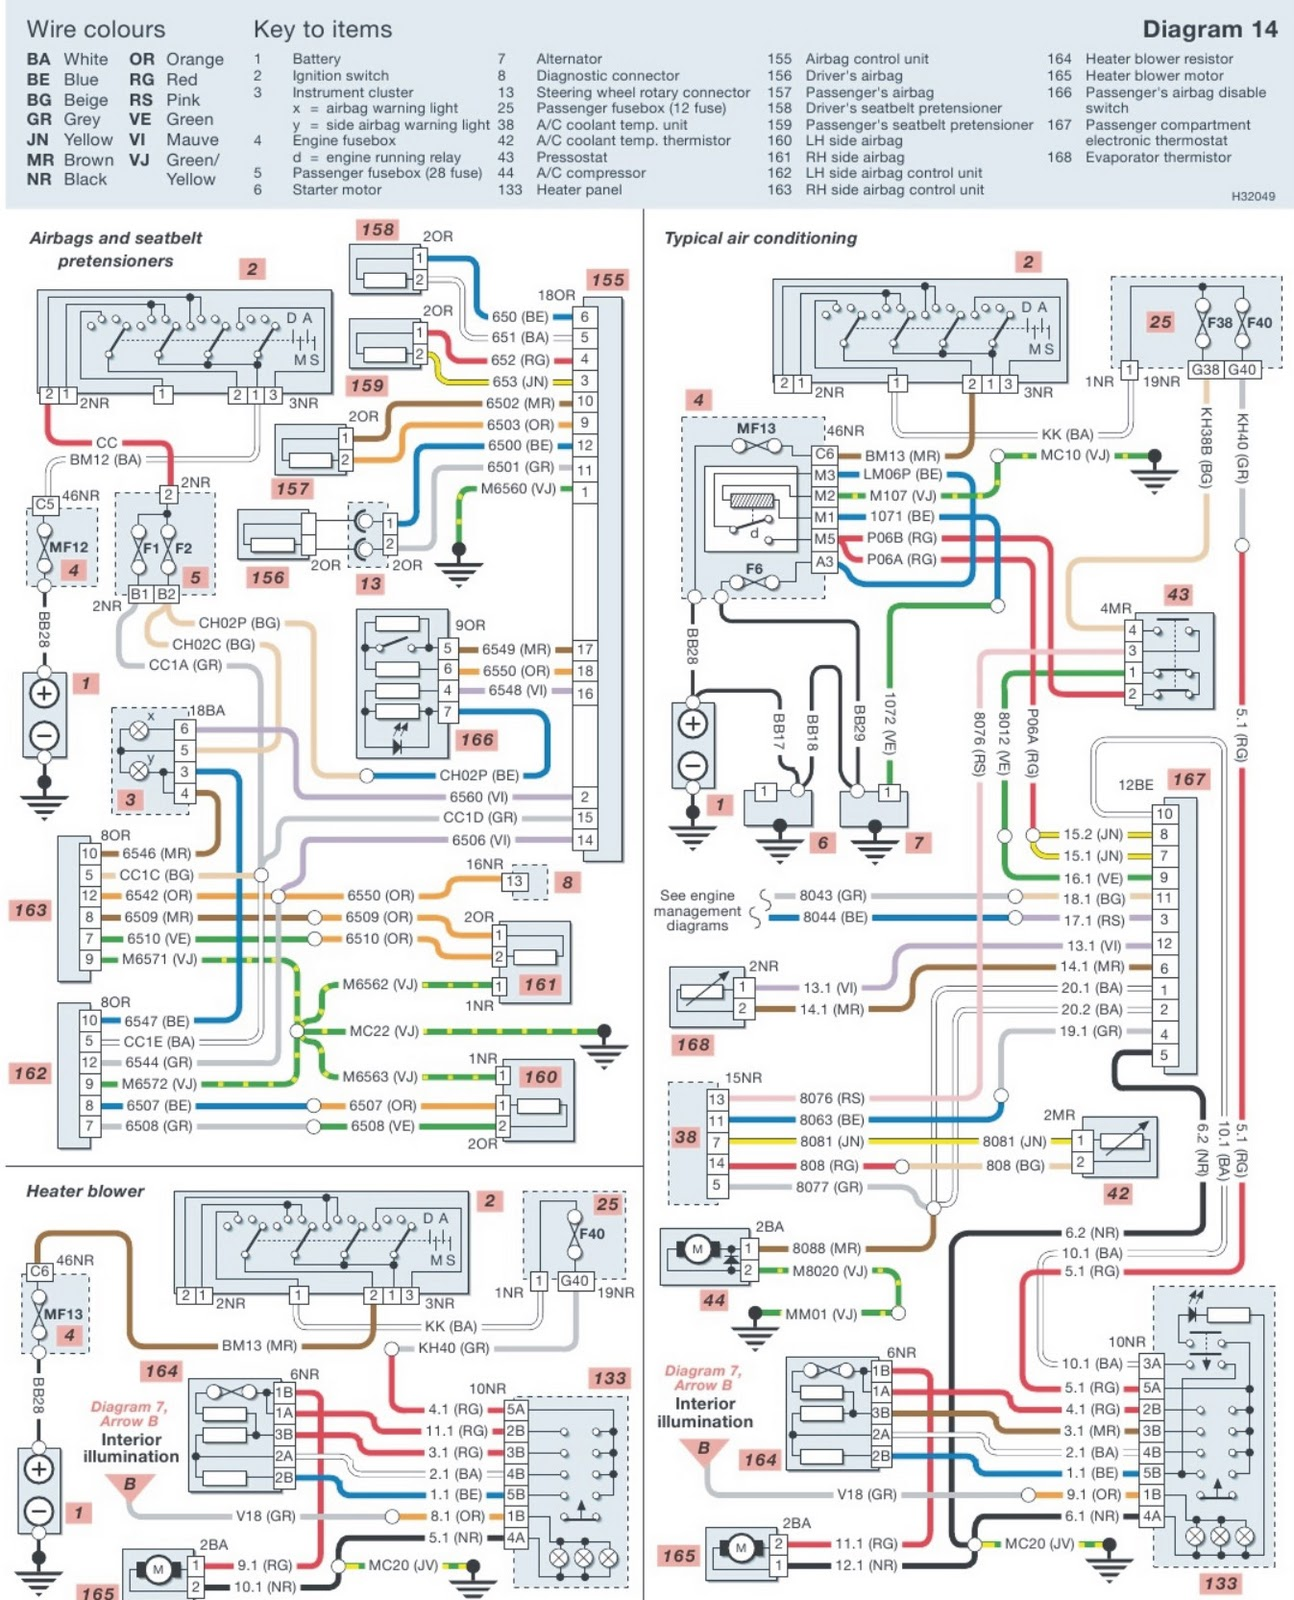 Clarion Stereo Wiring Diagram Suzuki Grand Vi Library 2006 Yamaha V Star Peugeot Airbags Heater Blower Air Conditioning Vitara Pdf Efcaviation